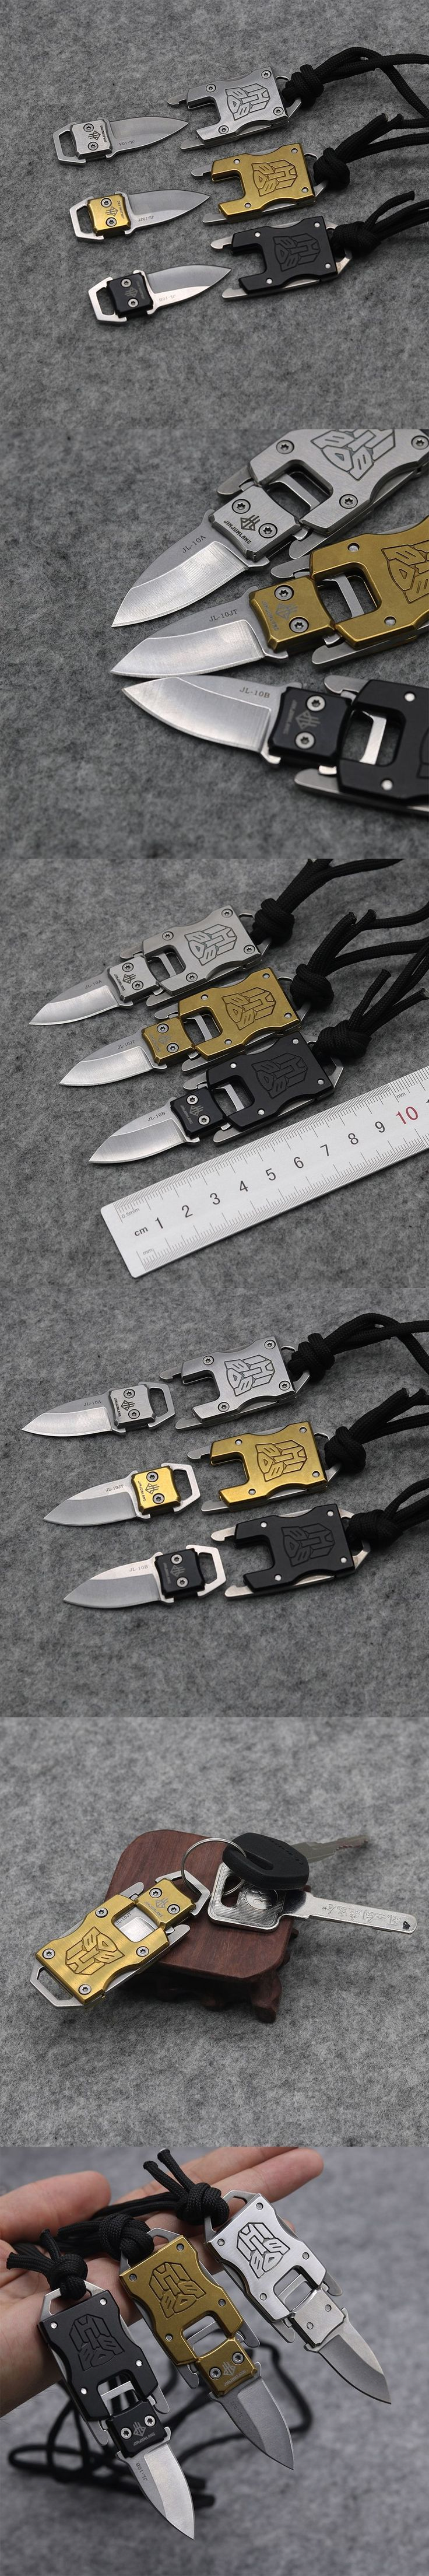 259 best edc images on pinterest tactical gear survival stuff and